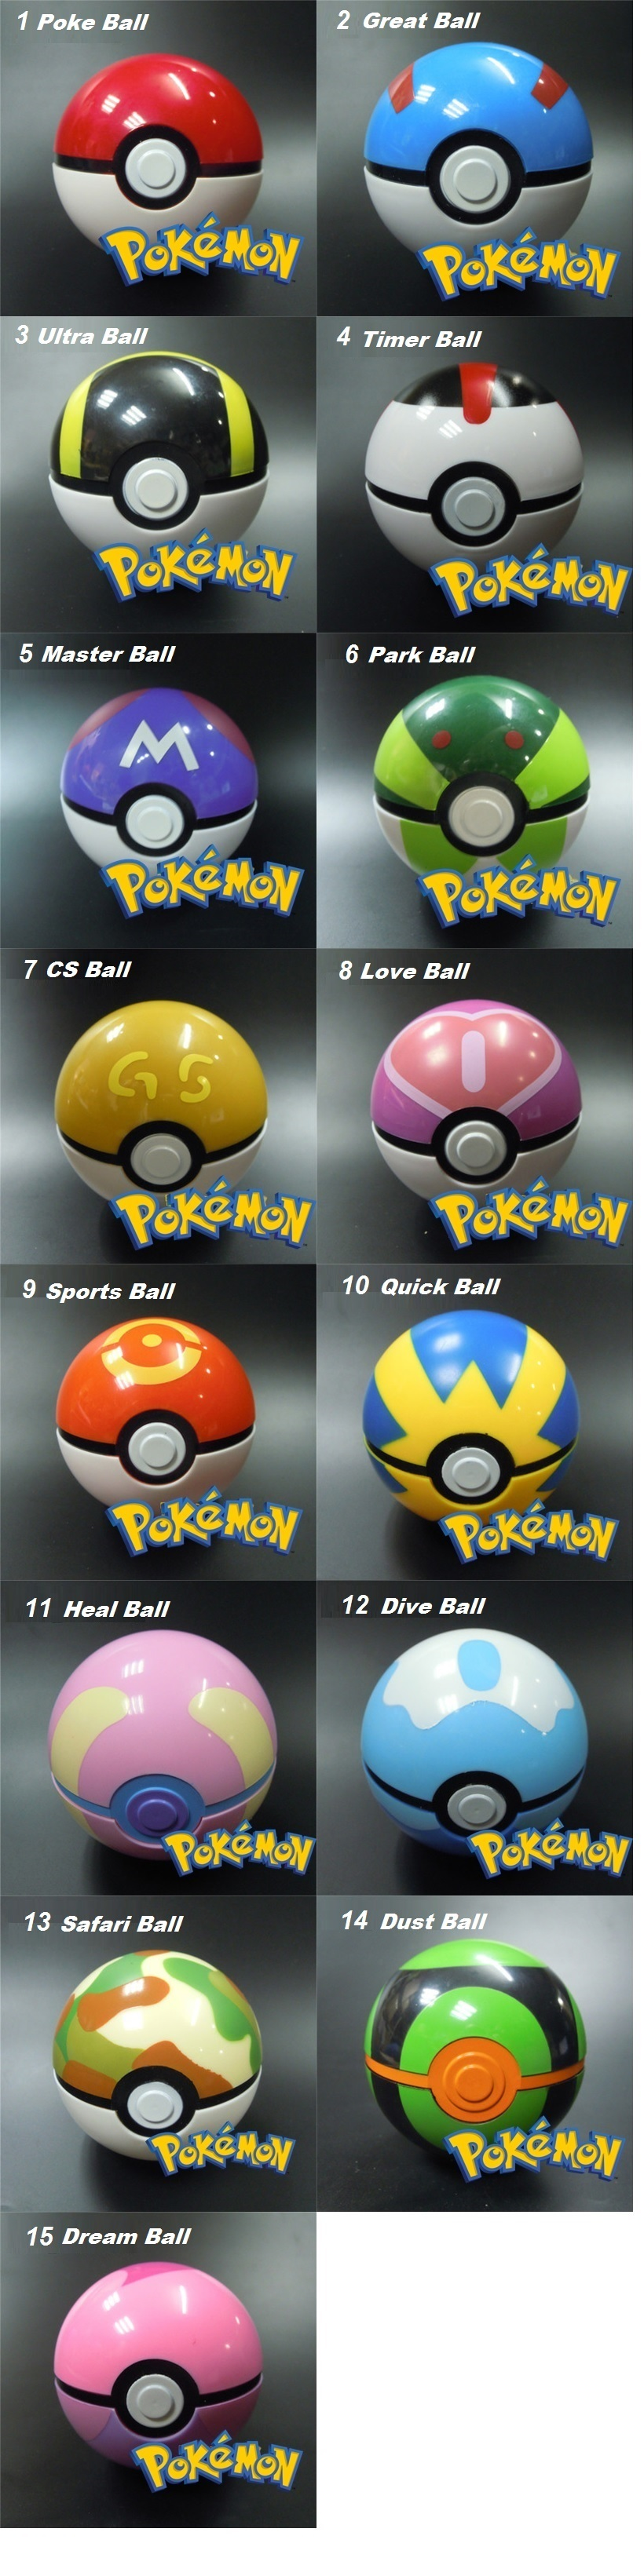 Free Pokemon Figure For Every Poke Ball Pokeball Stand Features Open The And Store Your Inside